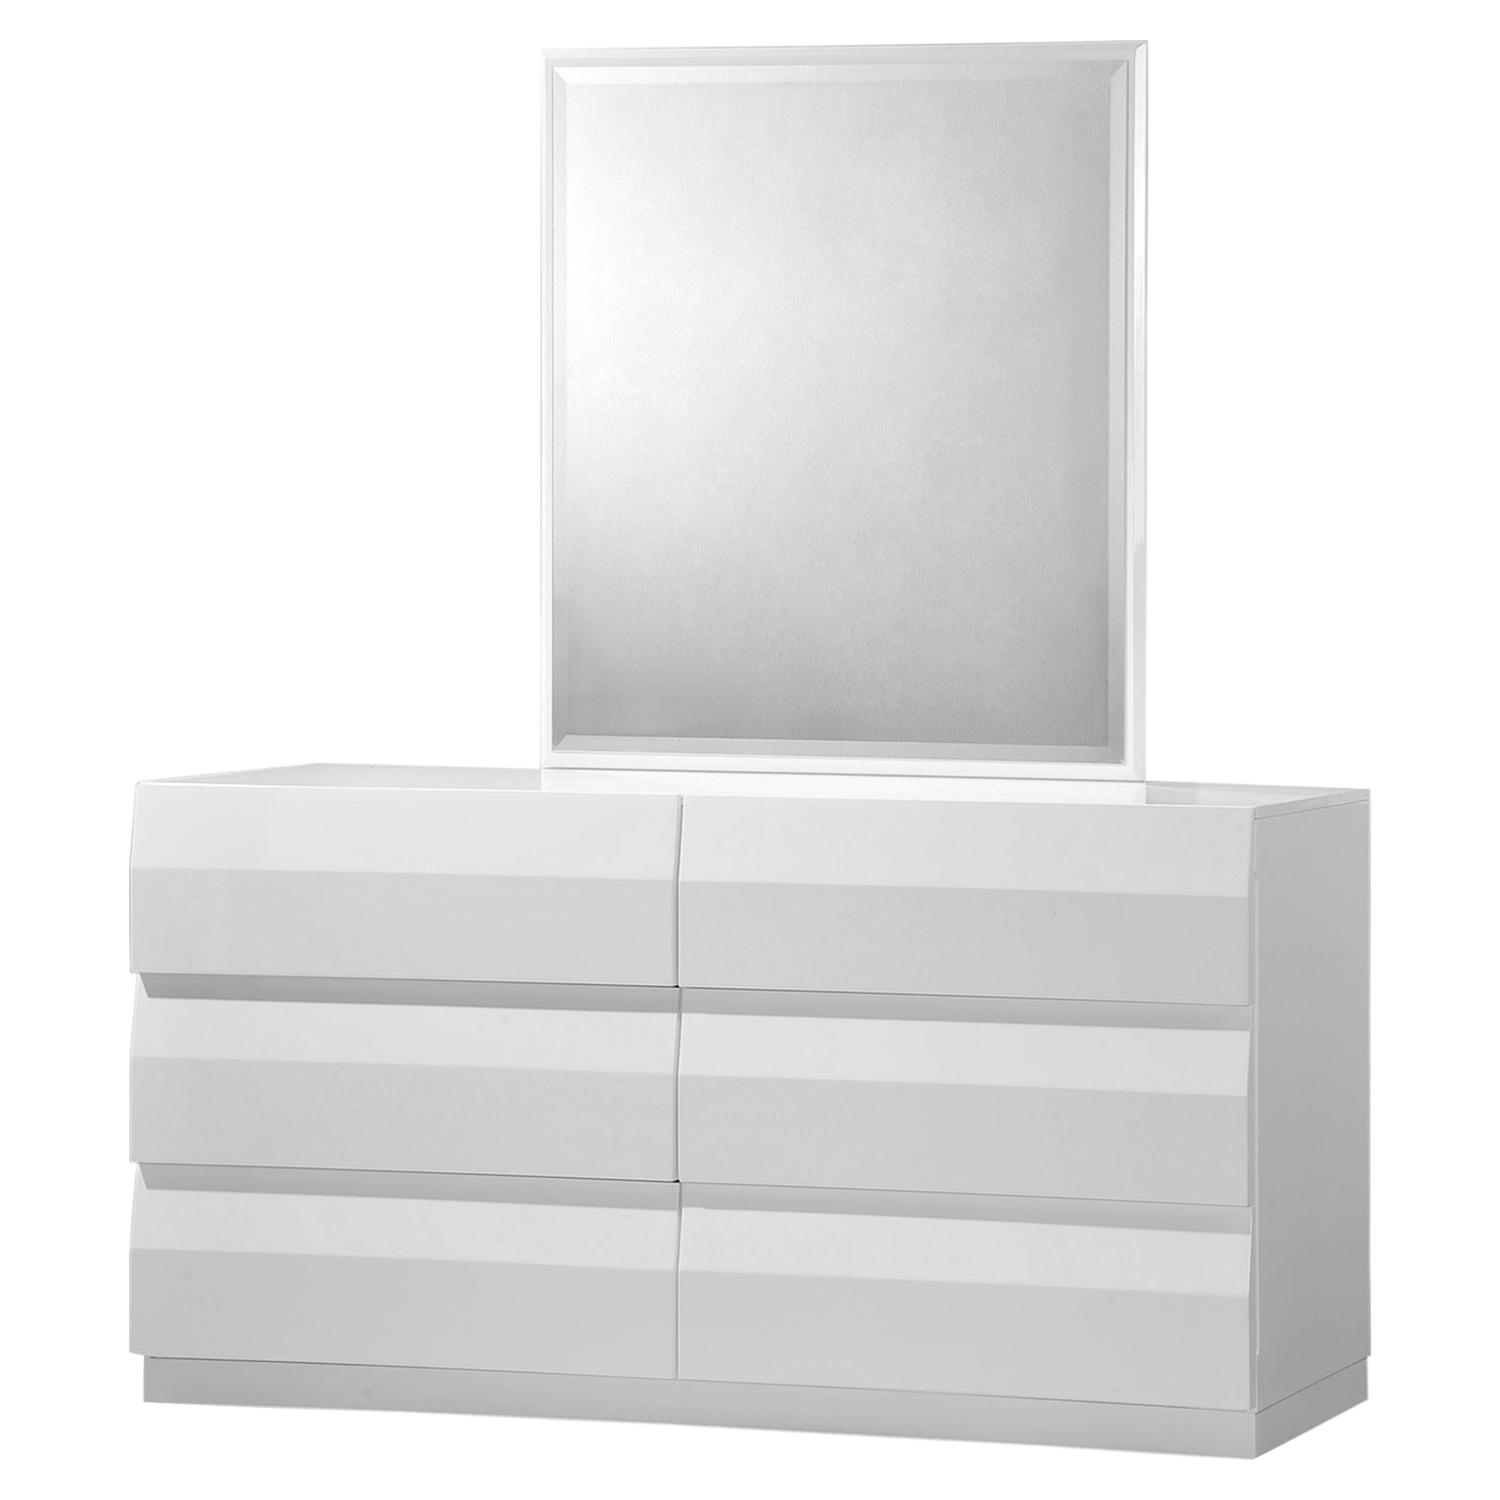 Bailey Dresser in High Gloss White - GLO-BAILEY-900A-D-M